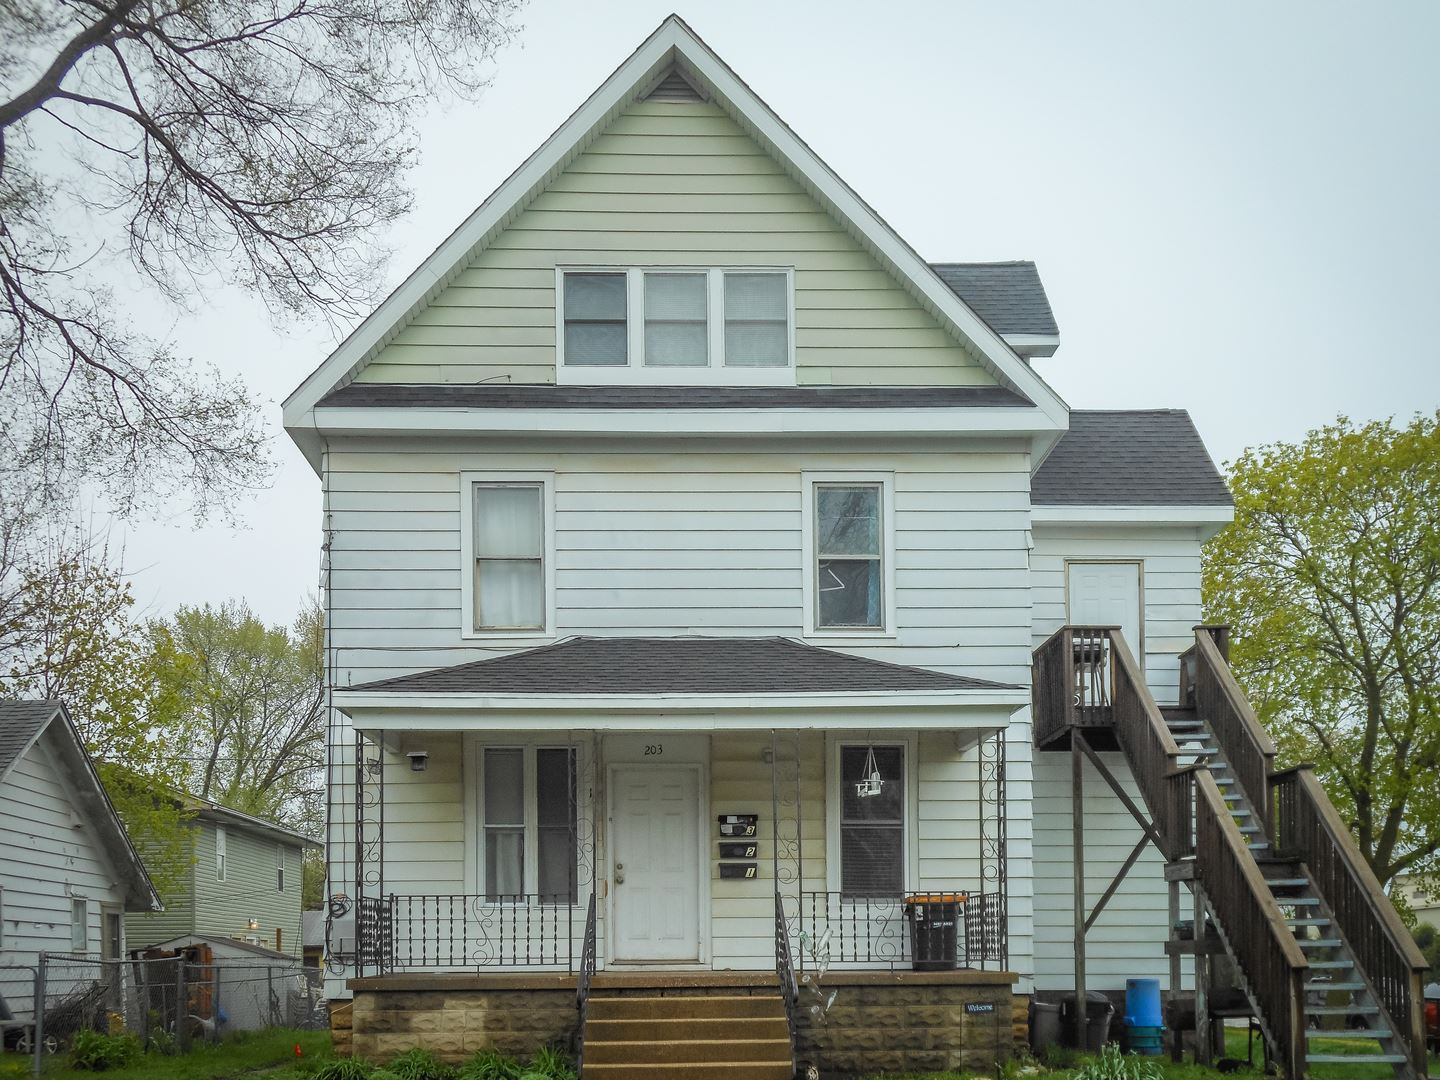 203 5th Avenue, Rochelle, IL 61068 - #: 10363178